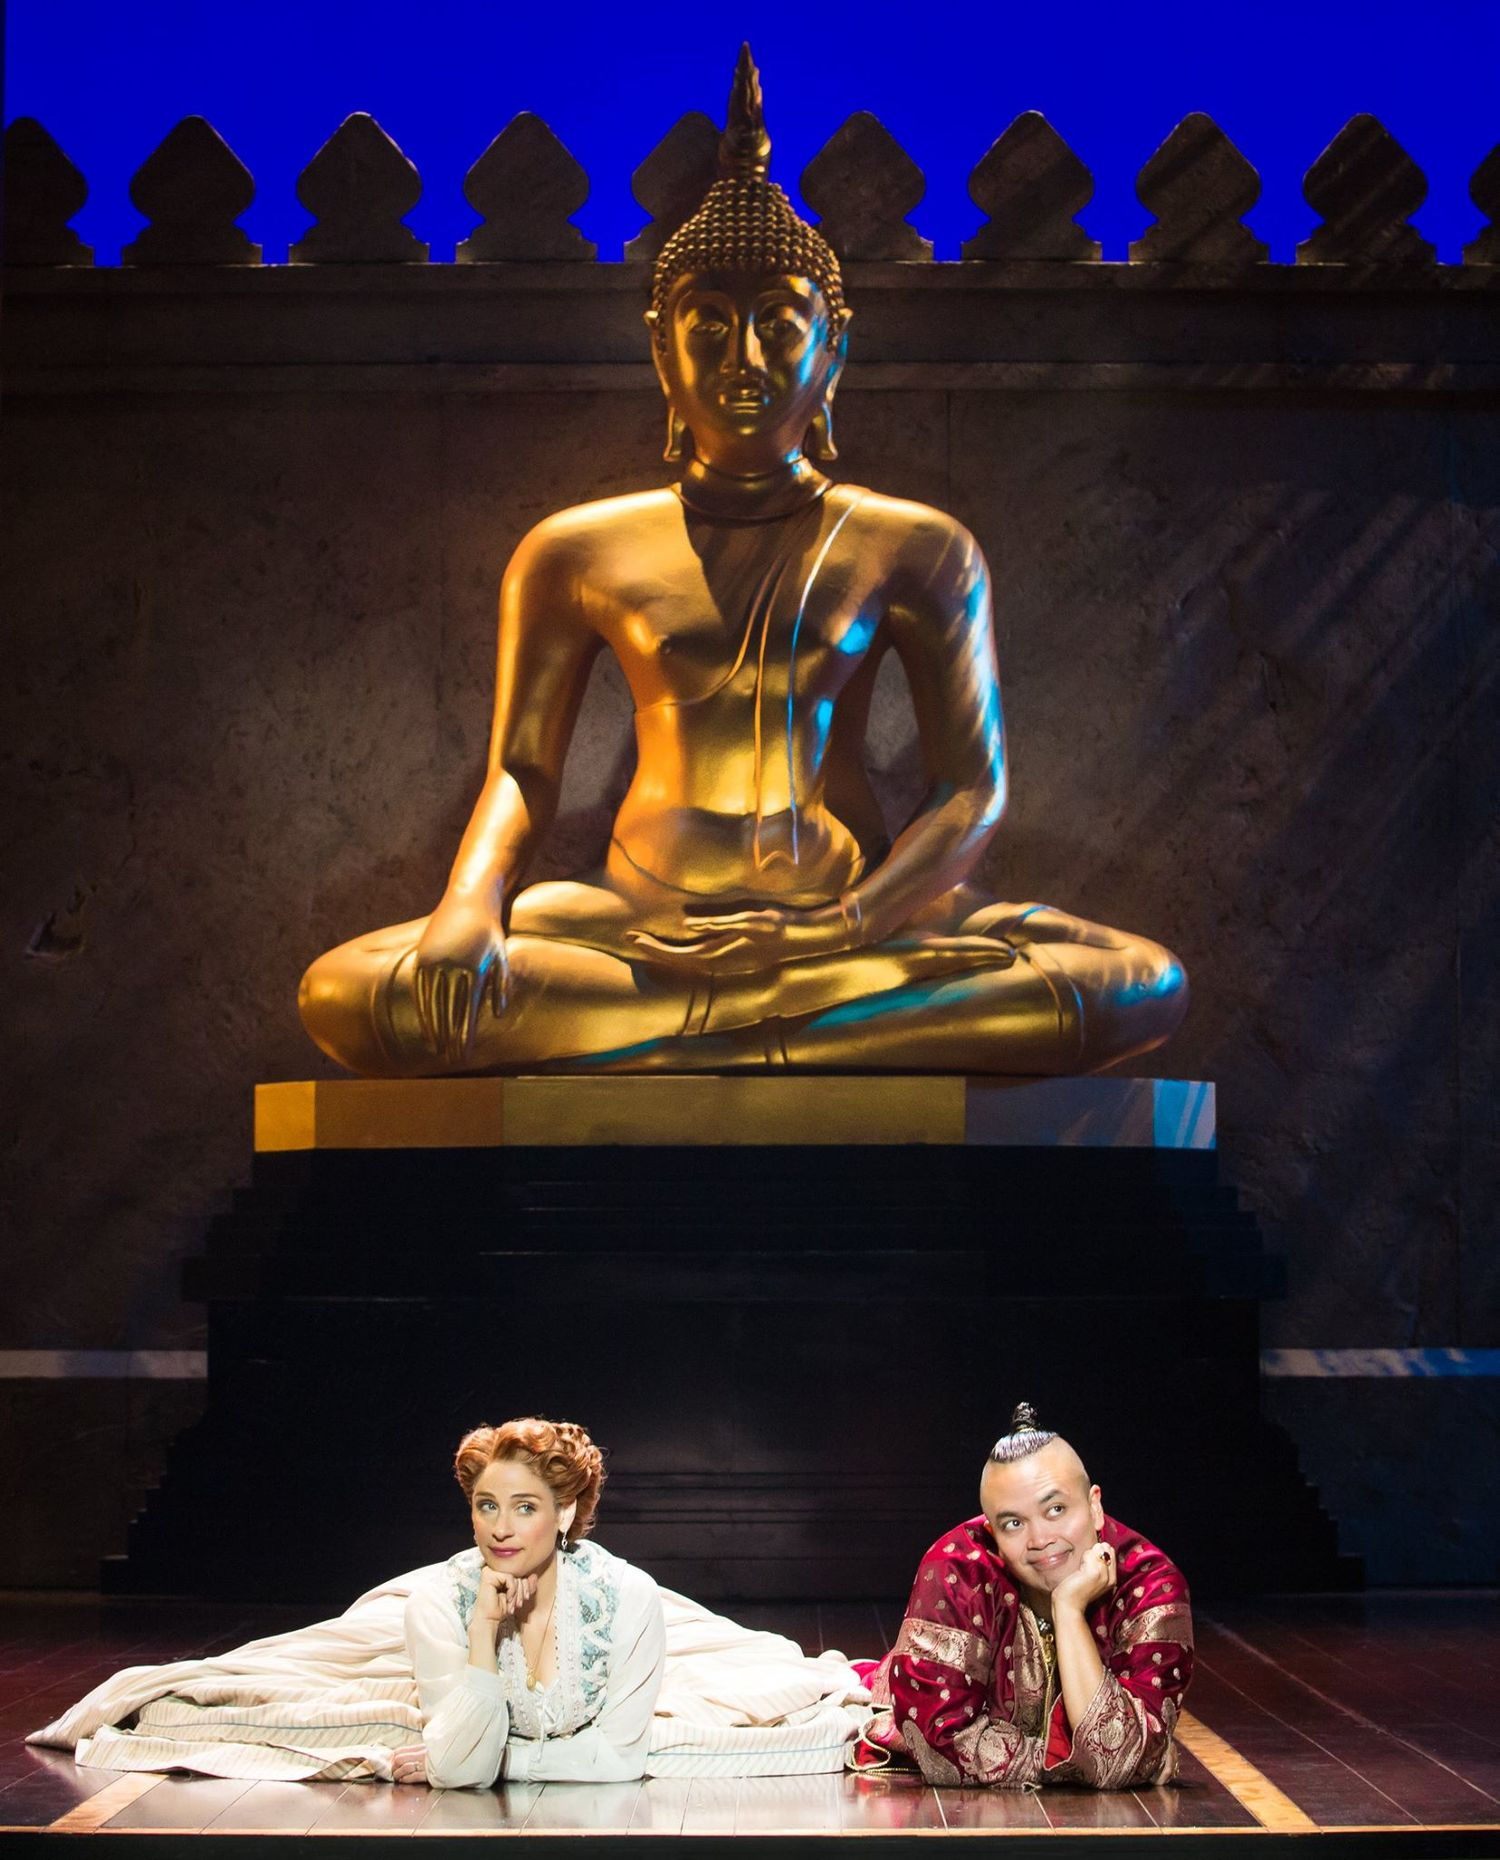 BWW Review: THE KING AND I was 'Something Wonderful' at The Aronoff Center For The Arts